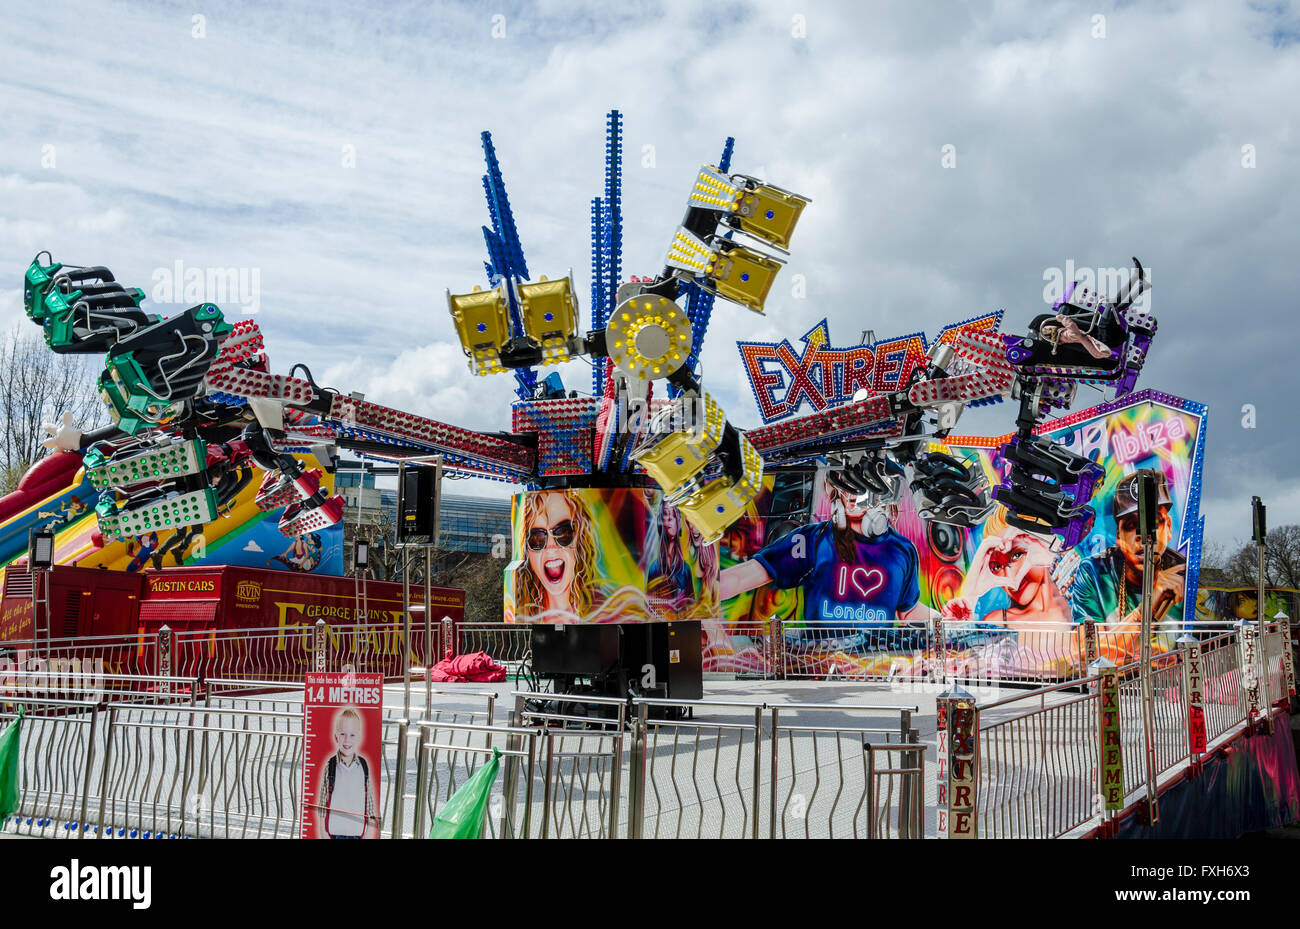 An orbiter ride at a fairground on Shepherds Bush Green in London, England. - Stock Image